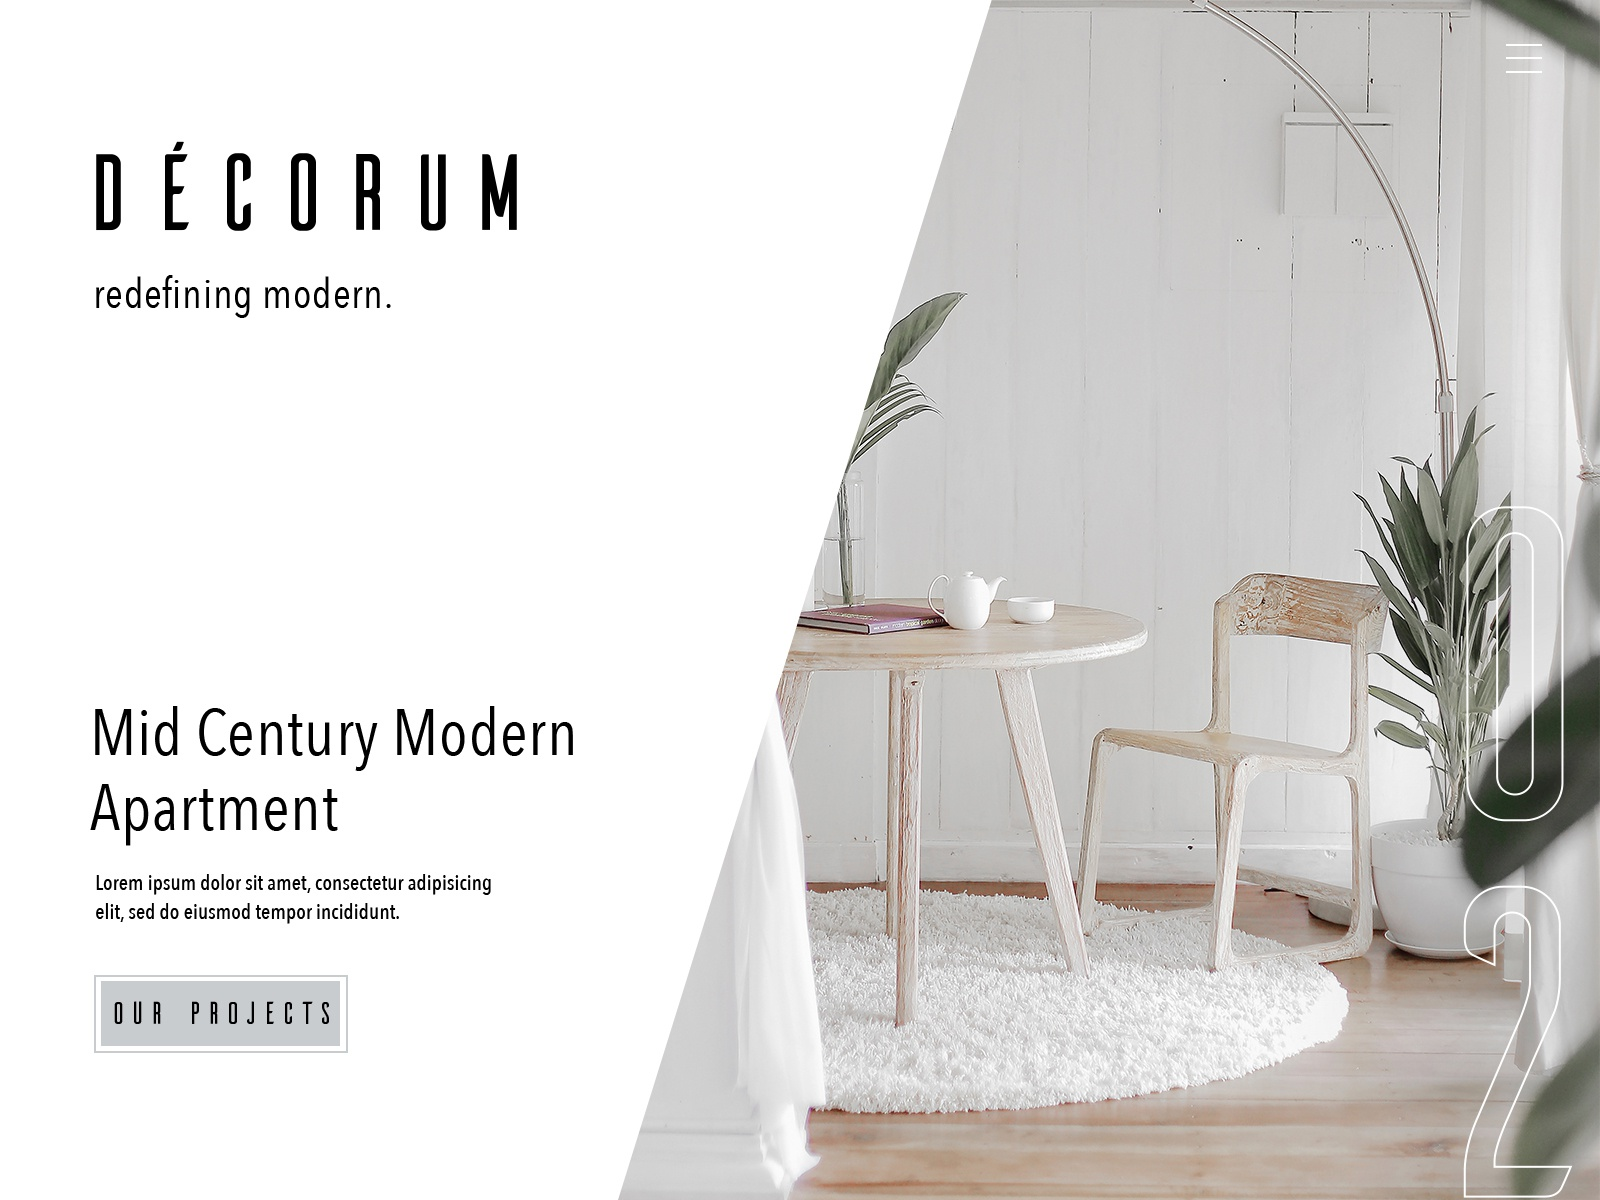 Decorum Interior Page Design By Jocelyn Wright Powell On Dribbble